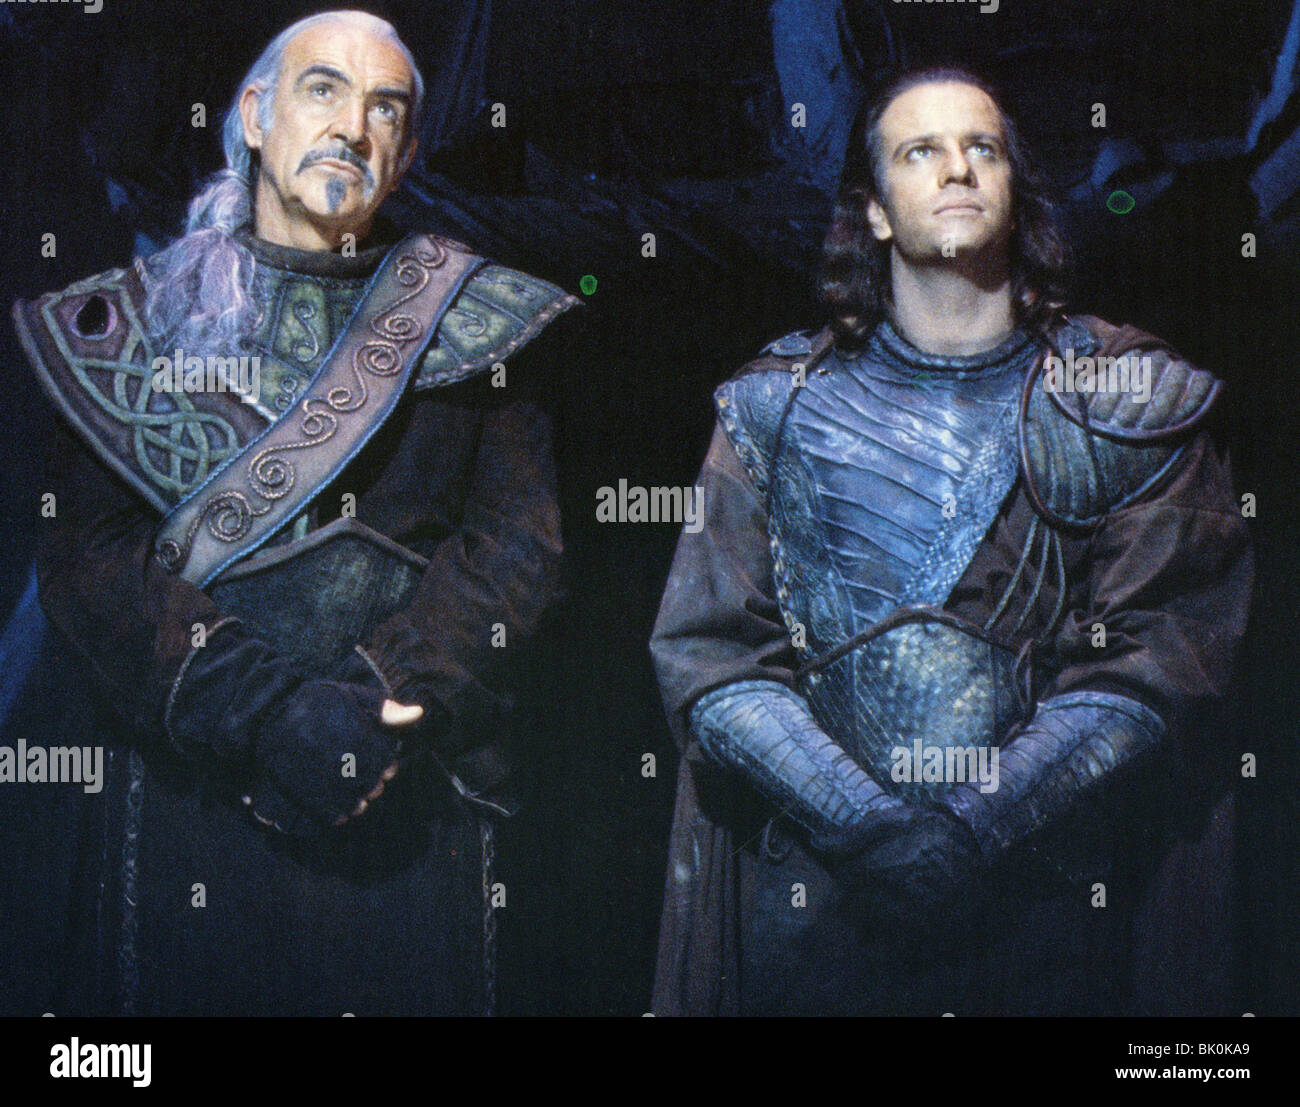 HIGHLANDER II - THE QUICKENING- 1990 Entertaiment film with Sean Connery at left and Christopher Lambert - Stock Image